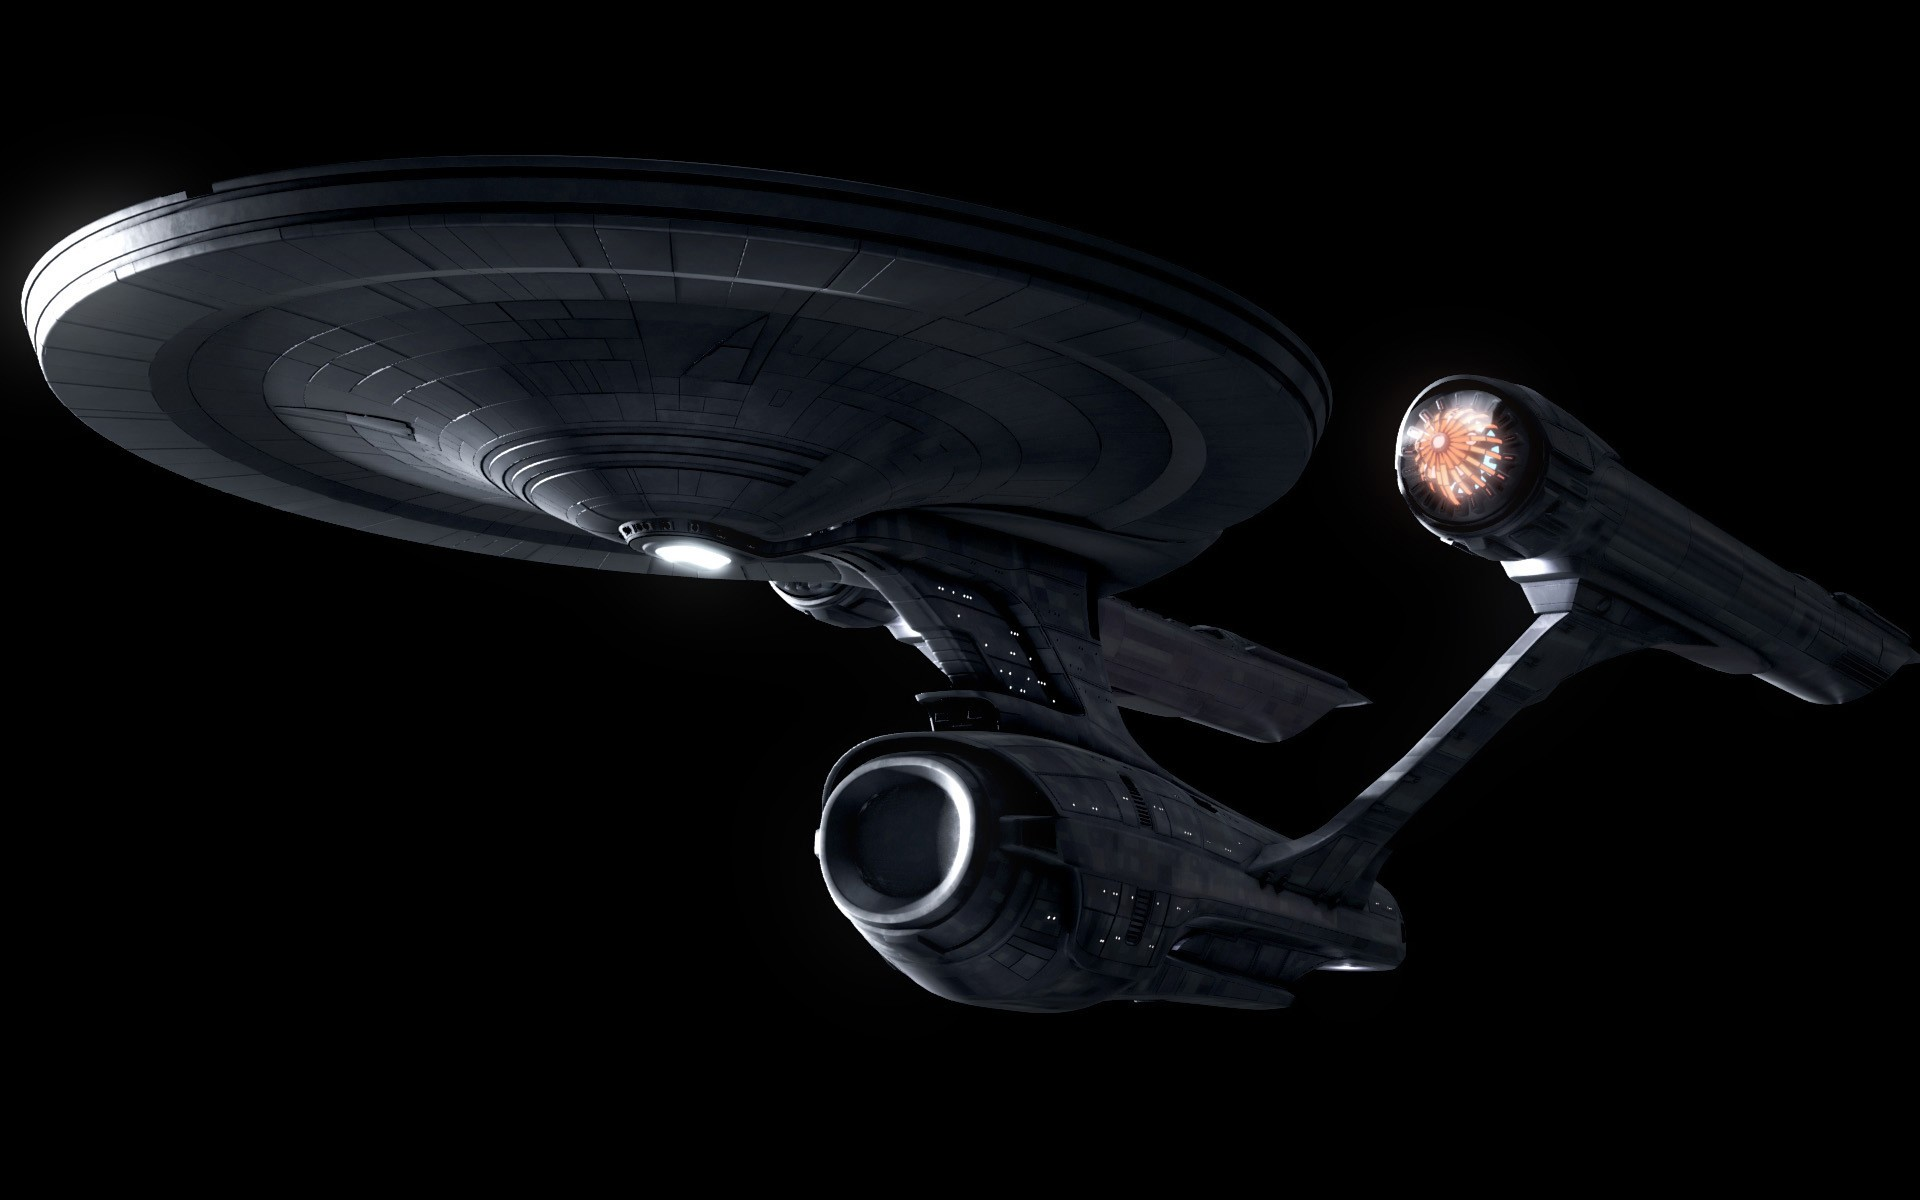 Star Trek Background Download Free Amazing Hd Backgrounds For